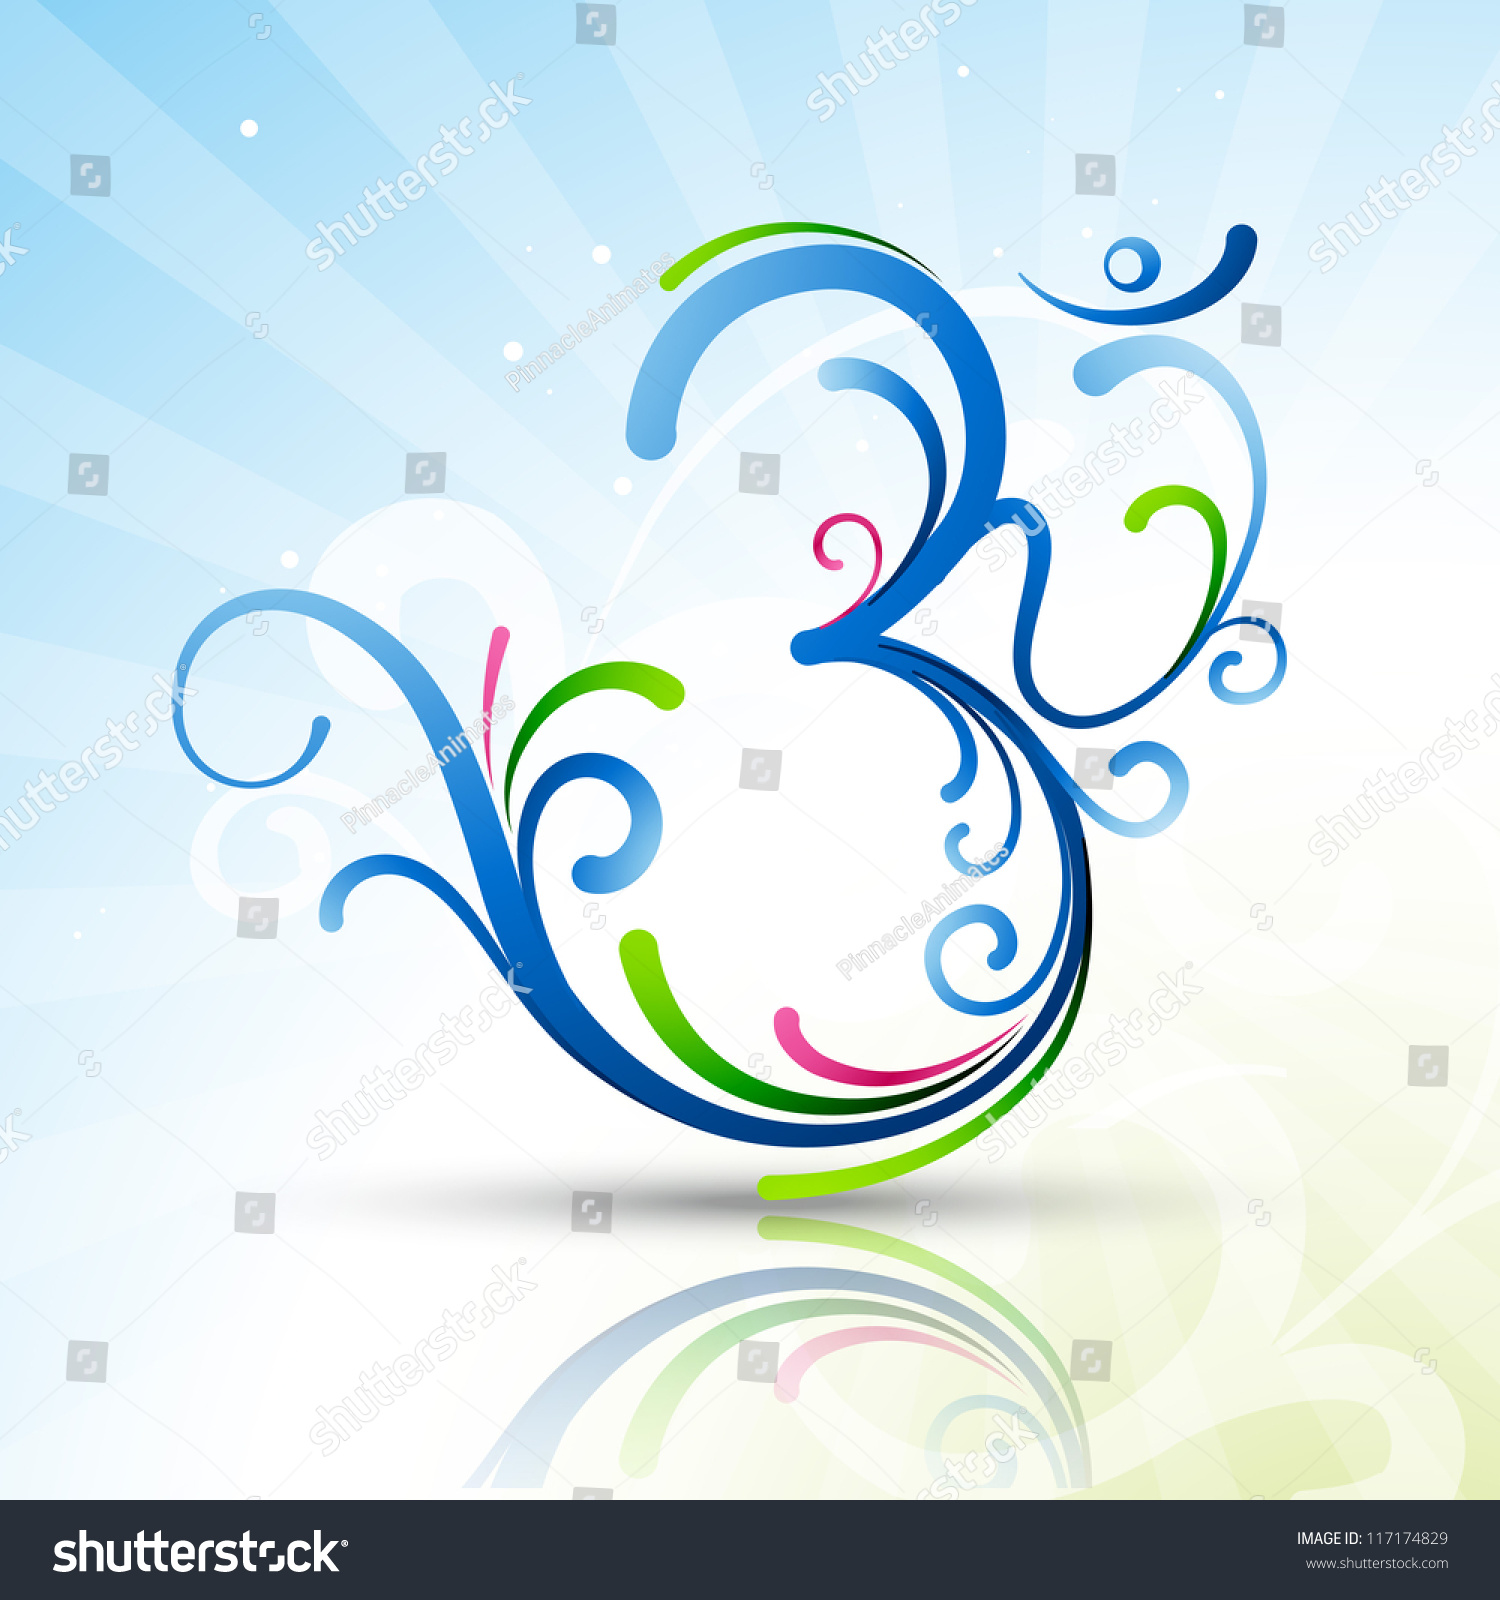 Beautiful Artistic Vector Om Symbol Design 117174829